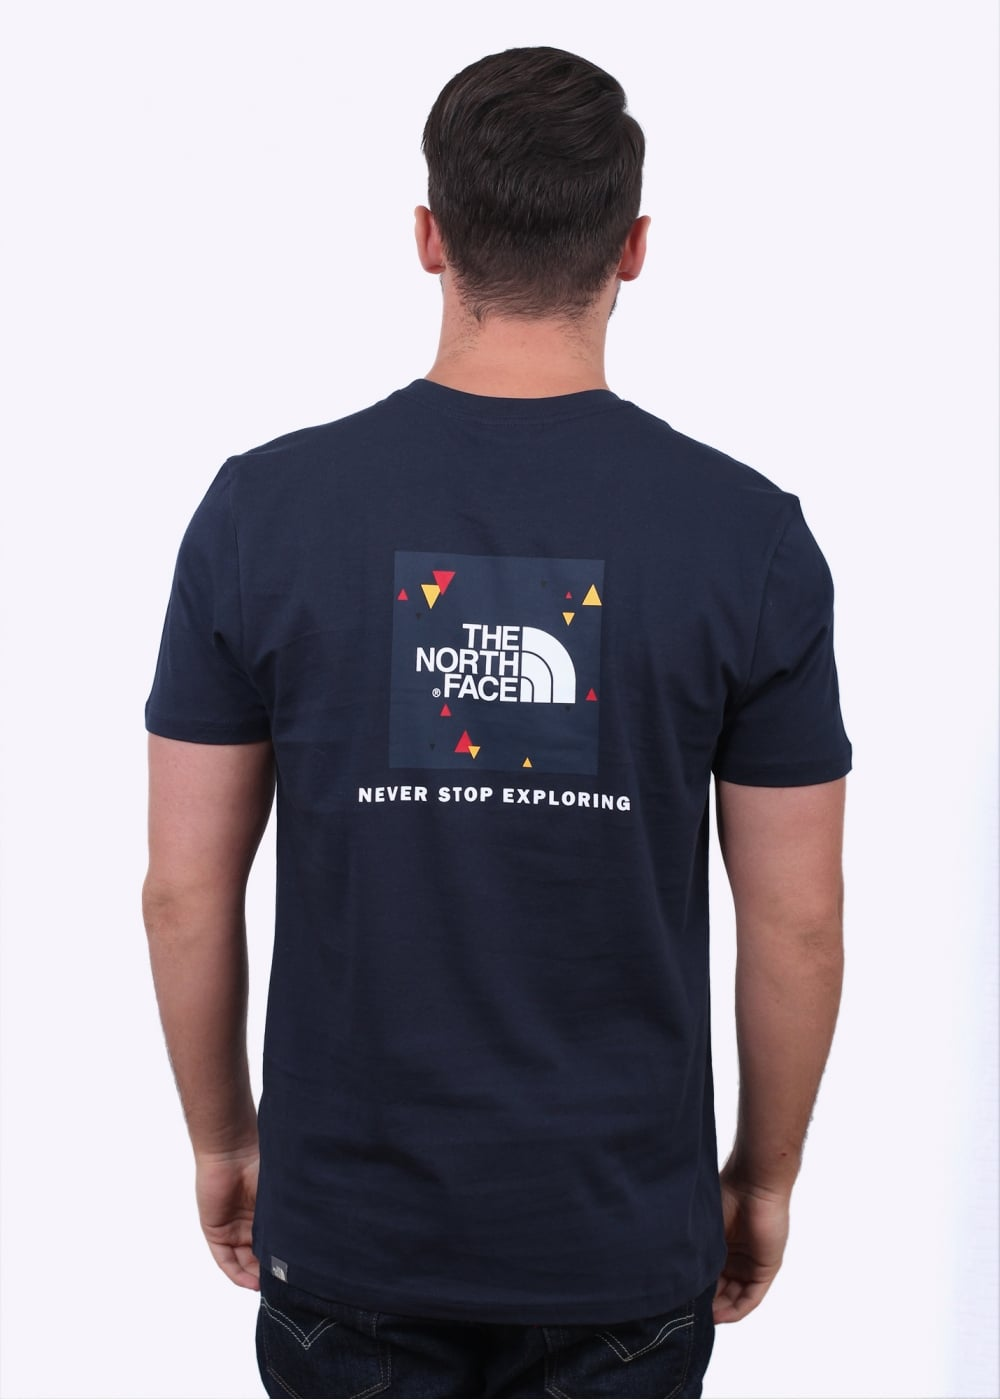 acbff30da The North Face SS Red Box Tee - Navy - T-shirts from Triads UK